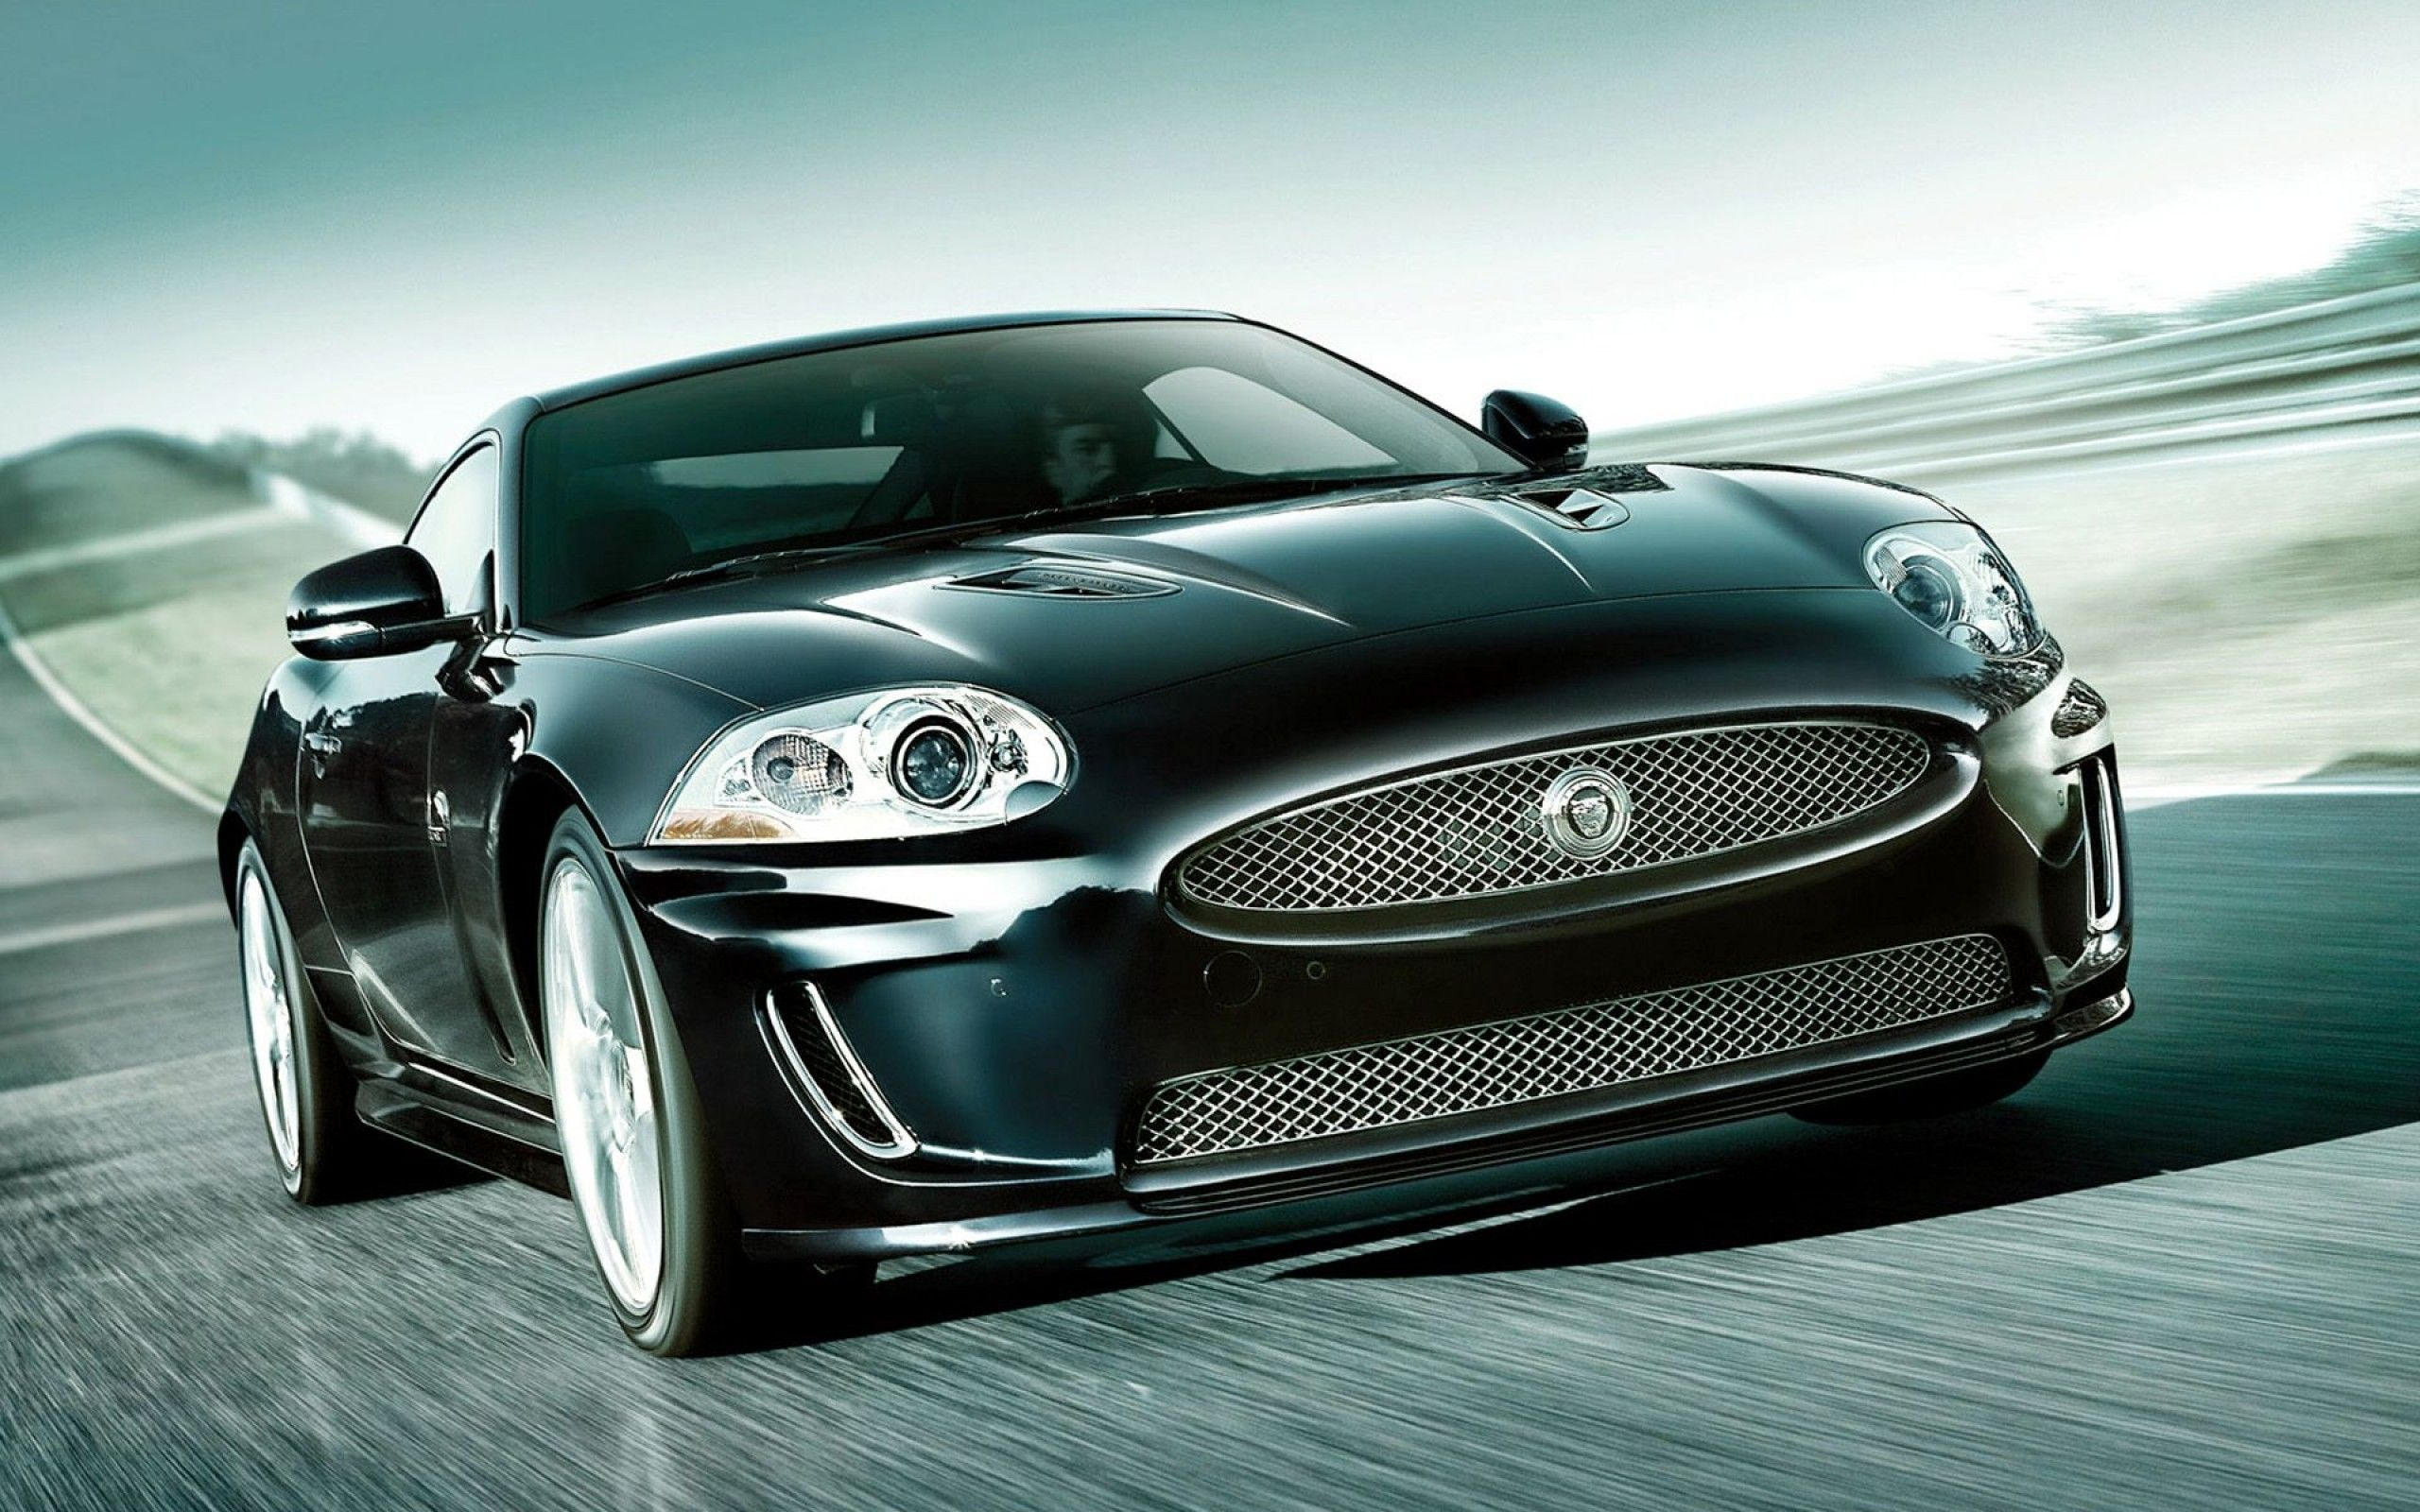 gets end as and a well upgrades hondayes price cuts slightly xk front jaguar better dynamic uk